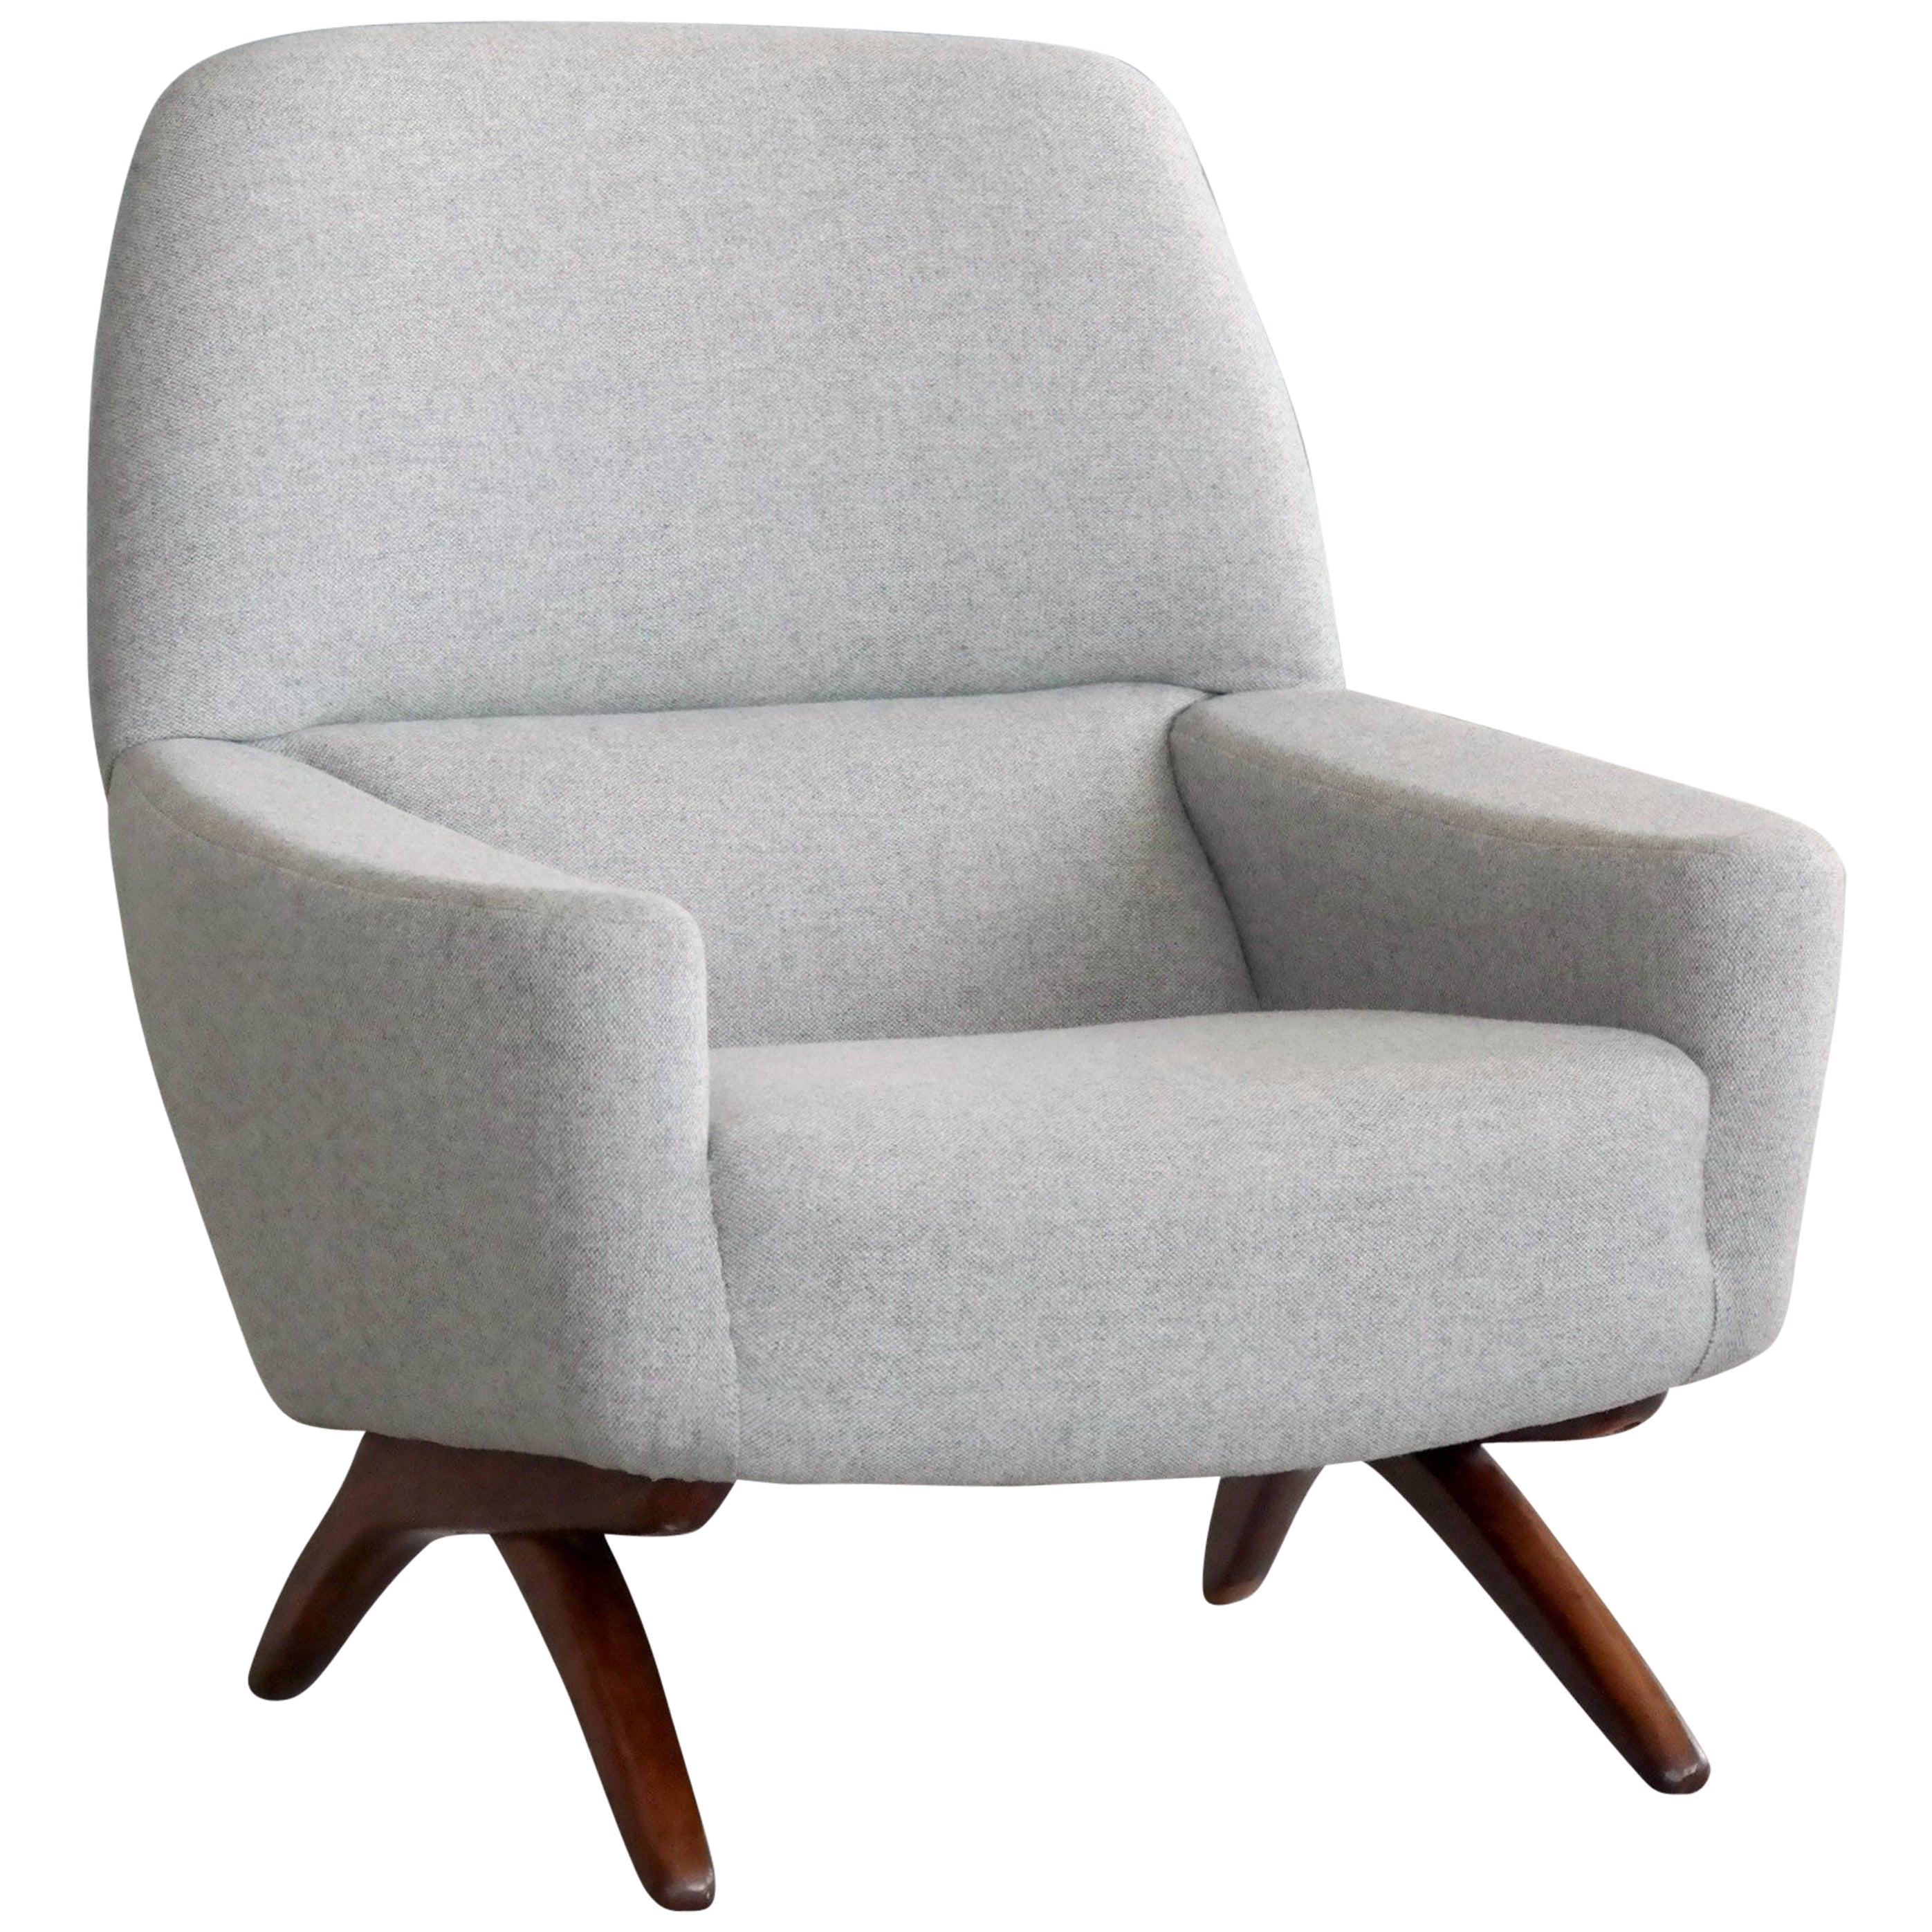 Danish Midcentury High Back Lounge Chair By Leif Hansen Style Of Illum Wikkelsø At 1stdibs